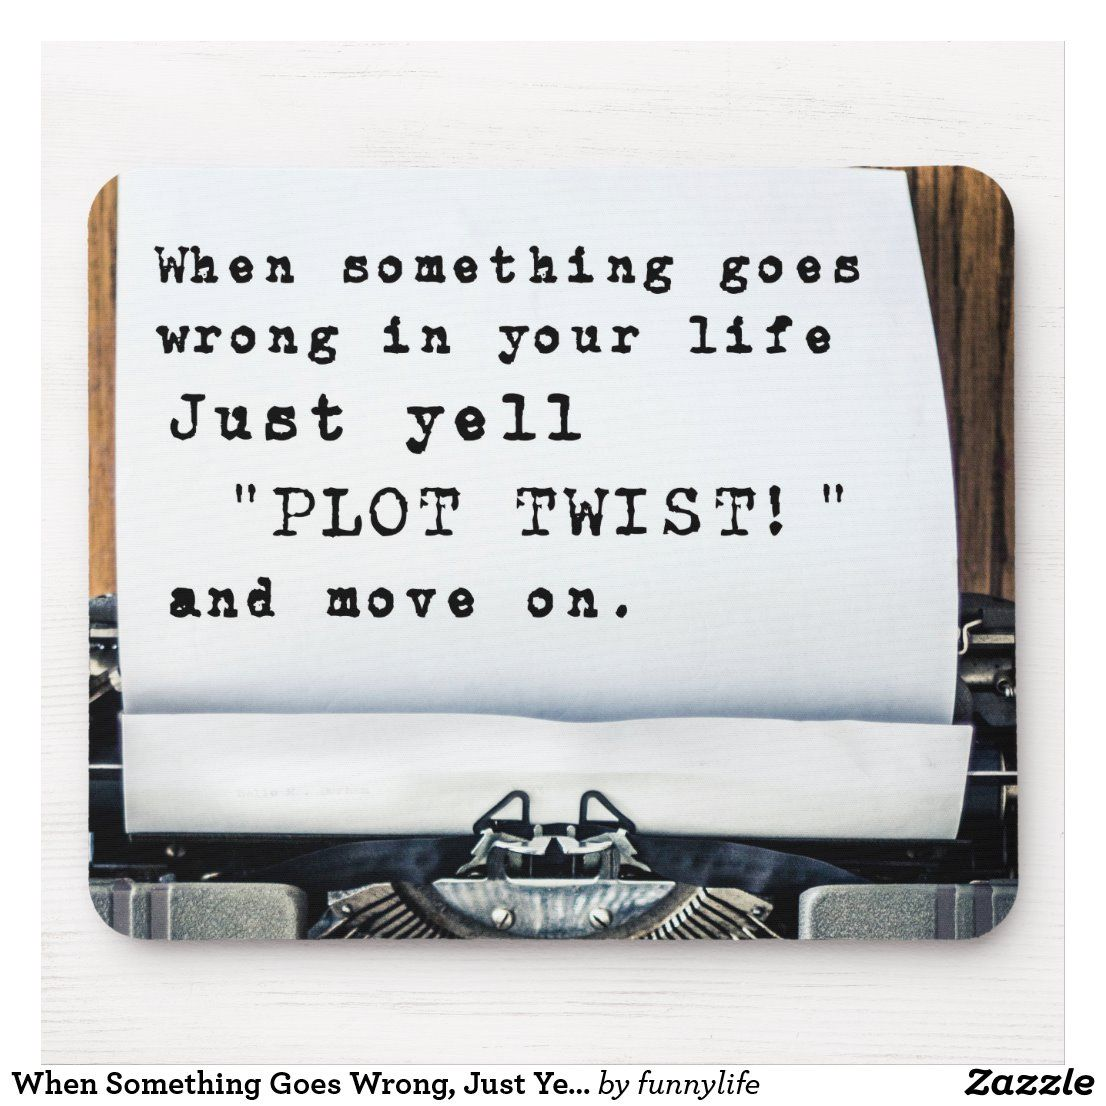 When Something Goes Wrong Just Yell Plot Twist Mouse Pad Zazzle Com Yelling Quotes Skills Quote Funny Quotes